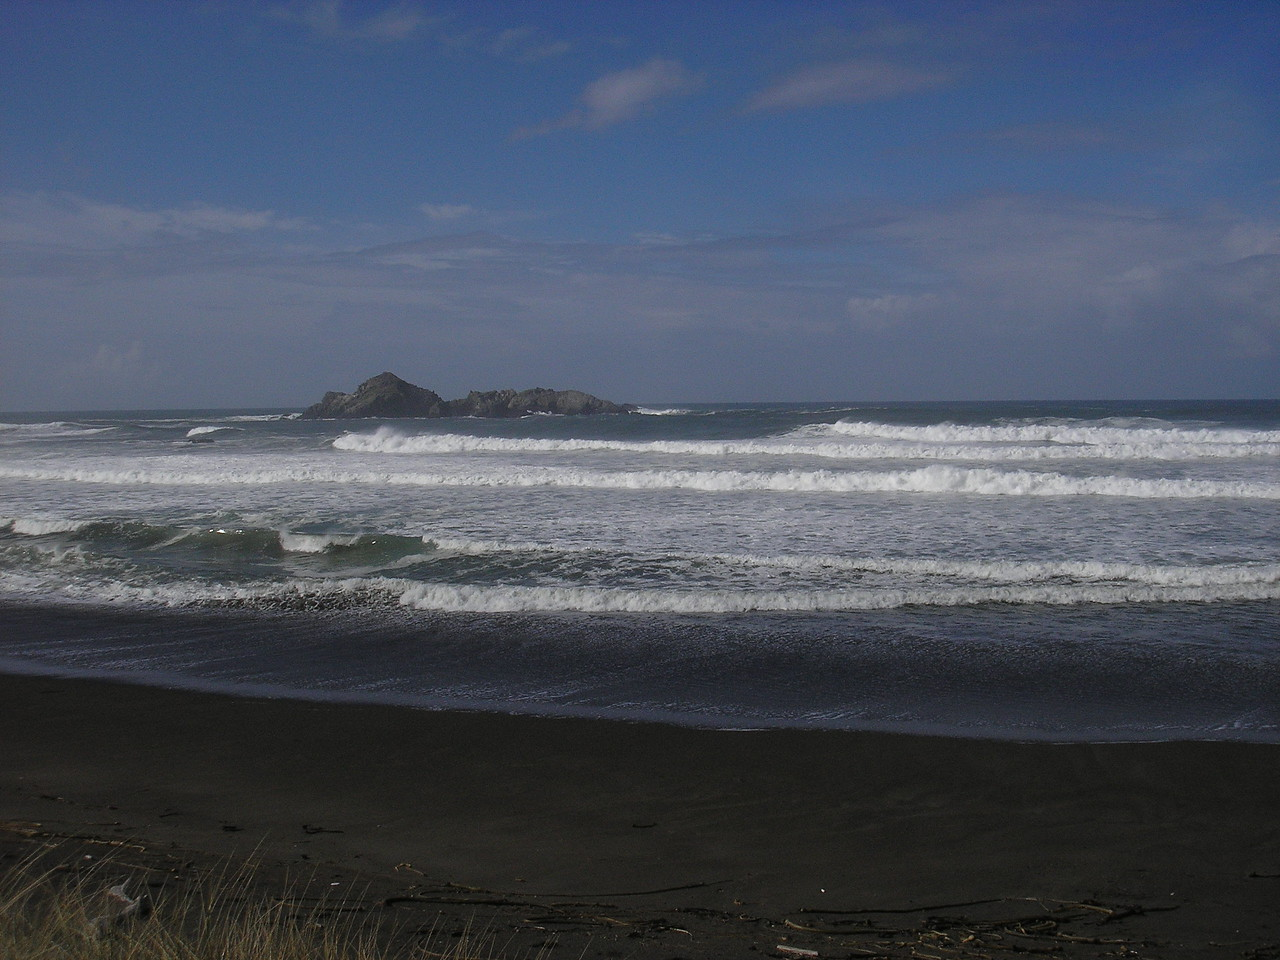 The Pacific Ocean near Cape Blanco Oregon.  We left here on October 29th in the morning headed for our winter position at Prineville Reservoir State Park in Central Oregon.